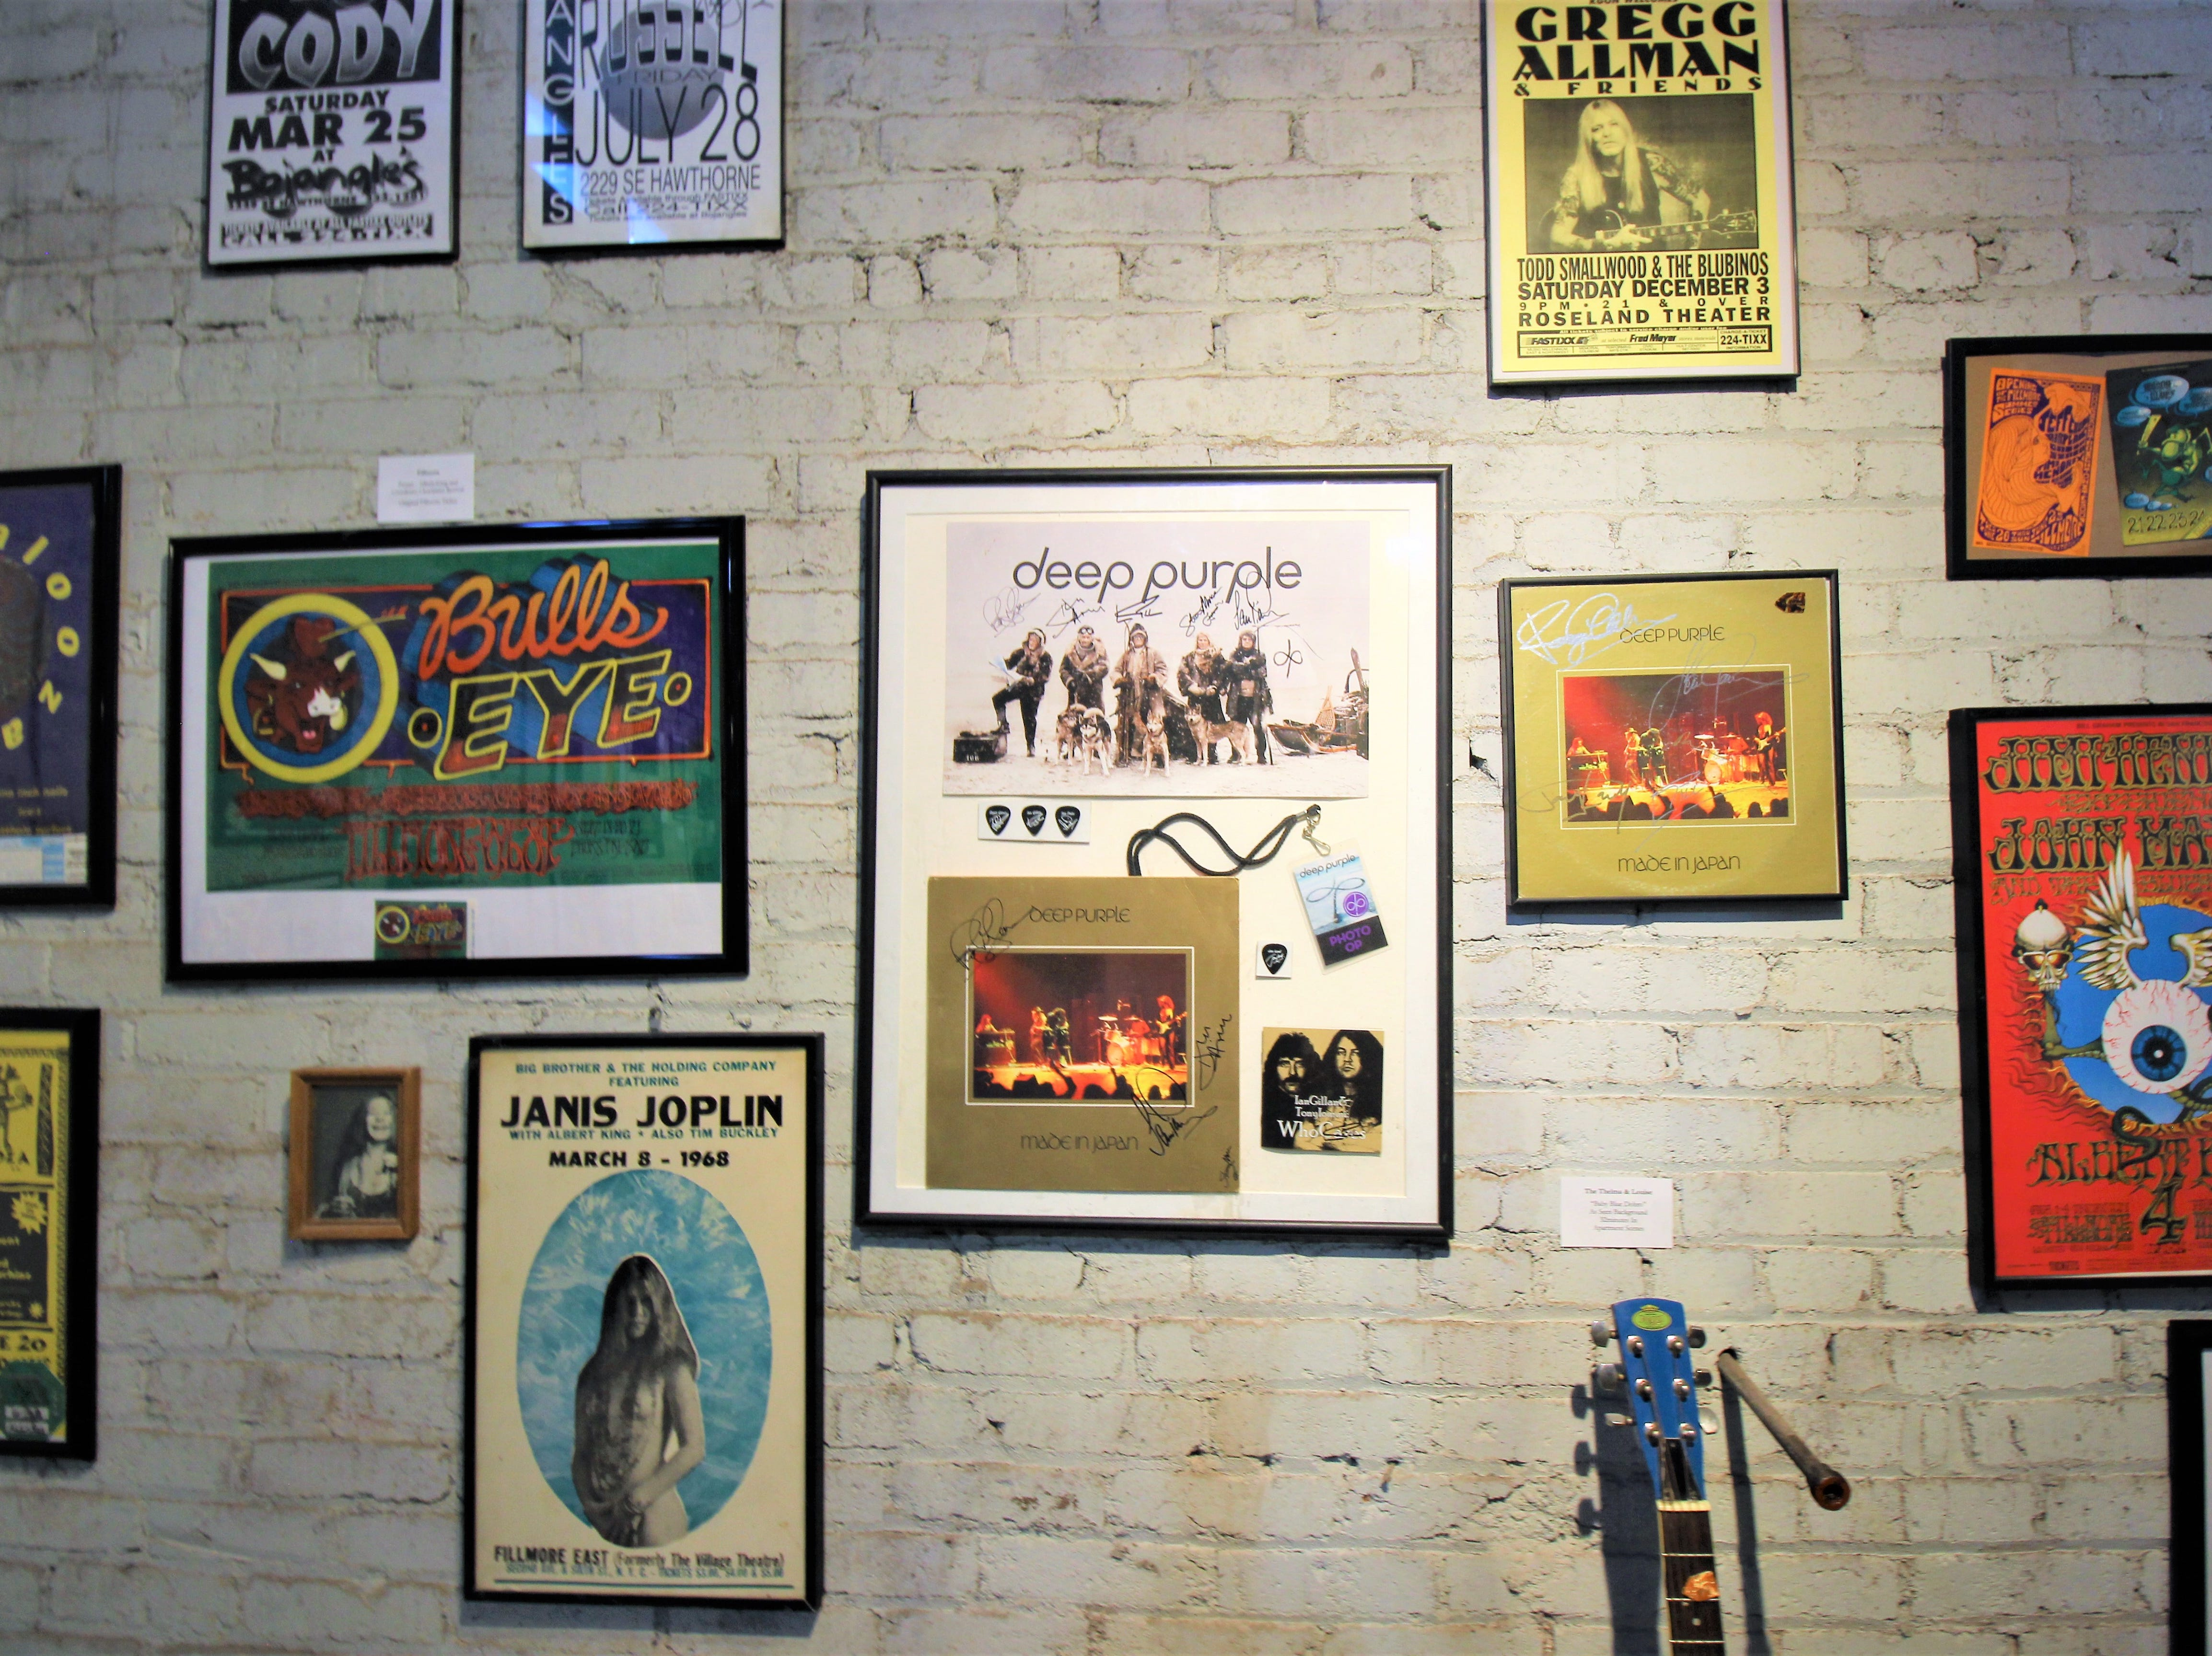 So many legends over many decades not forgotten, on exhibit at the Carrizxoz Rock and Roll Hall of Fame.